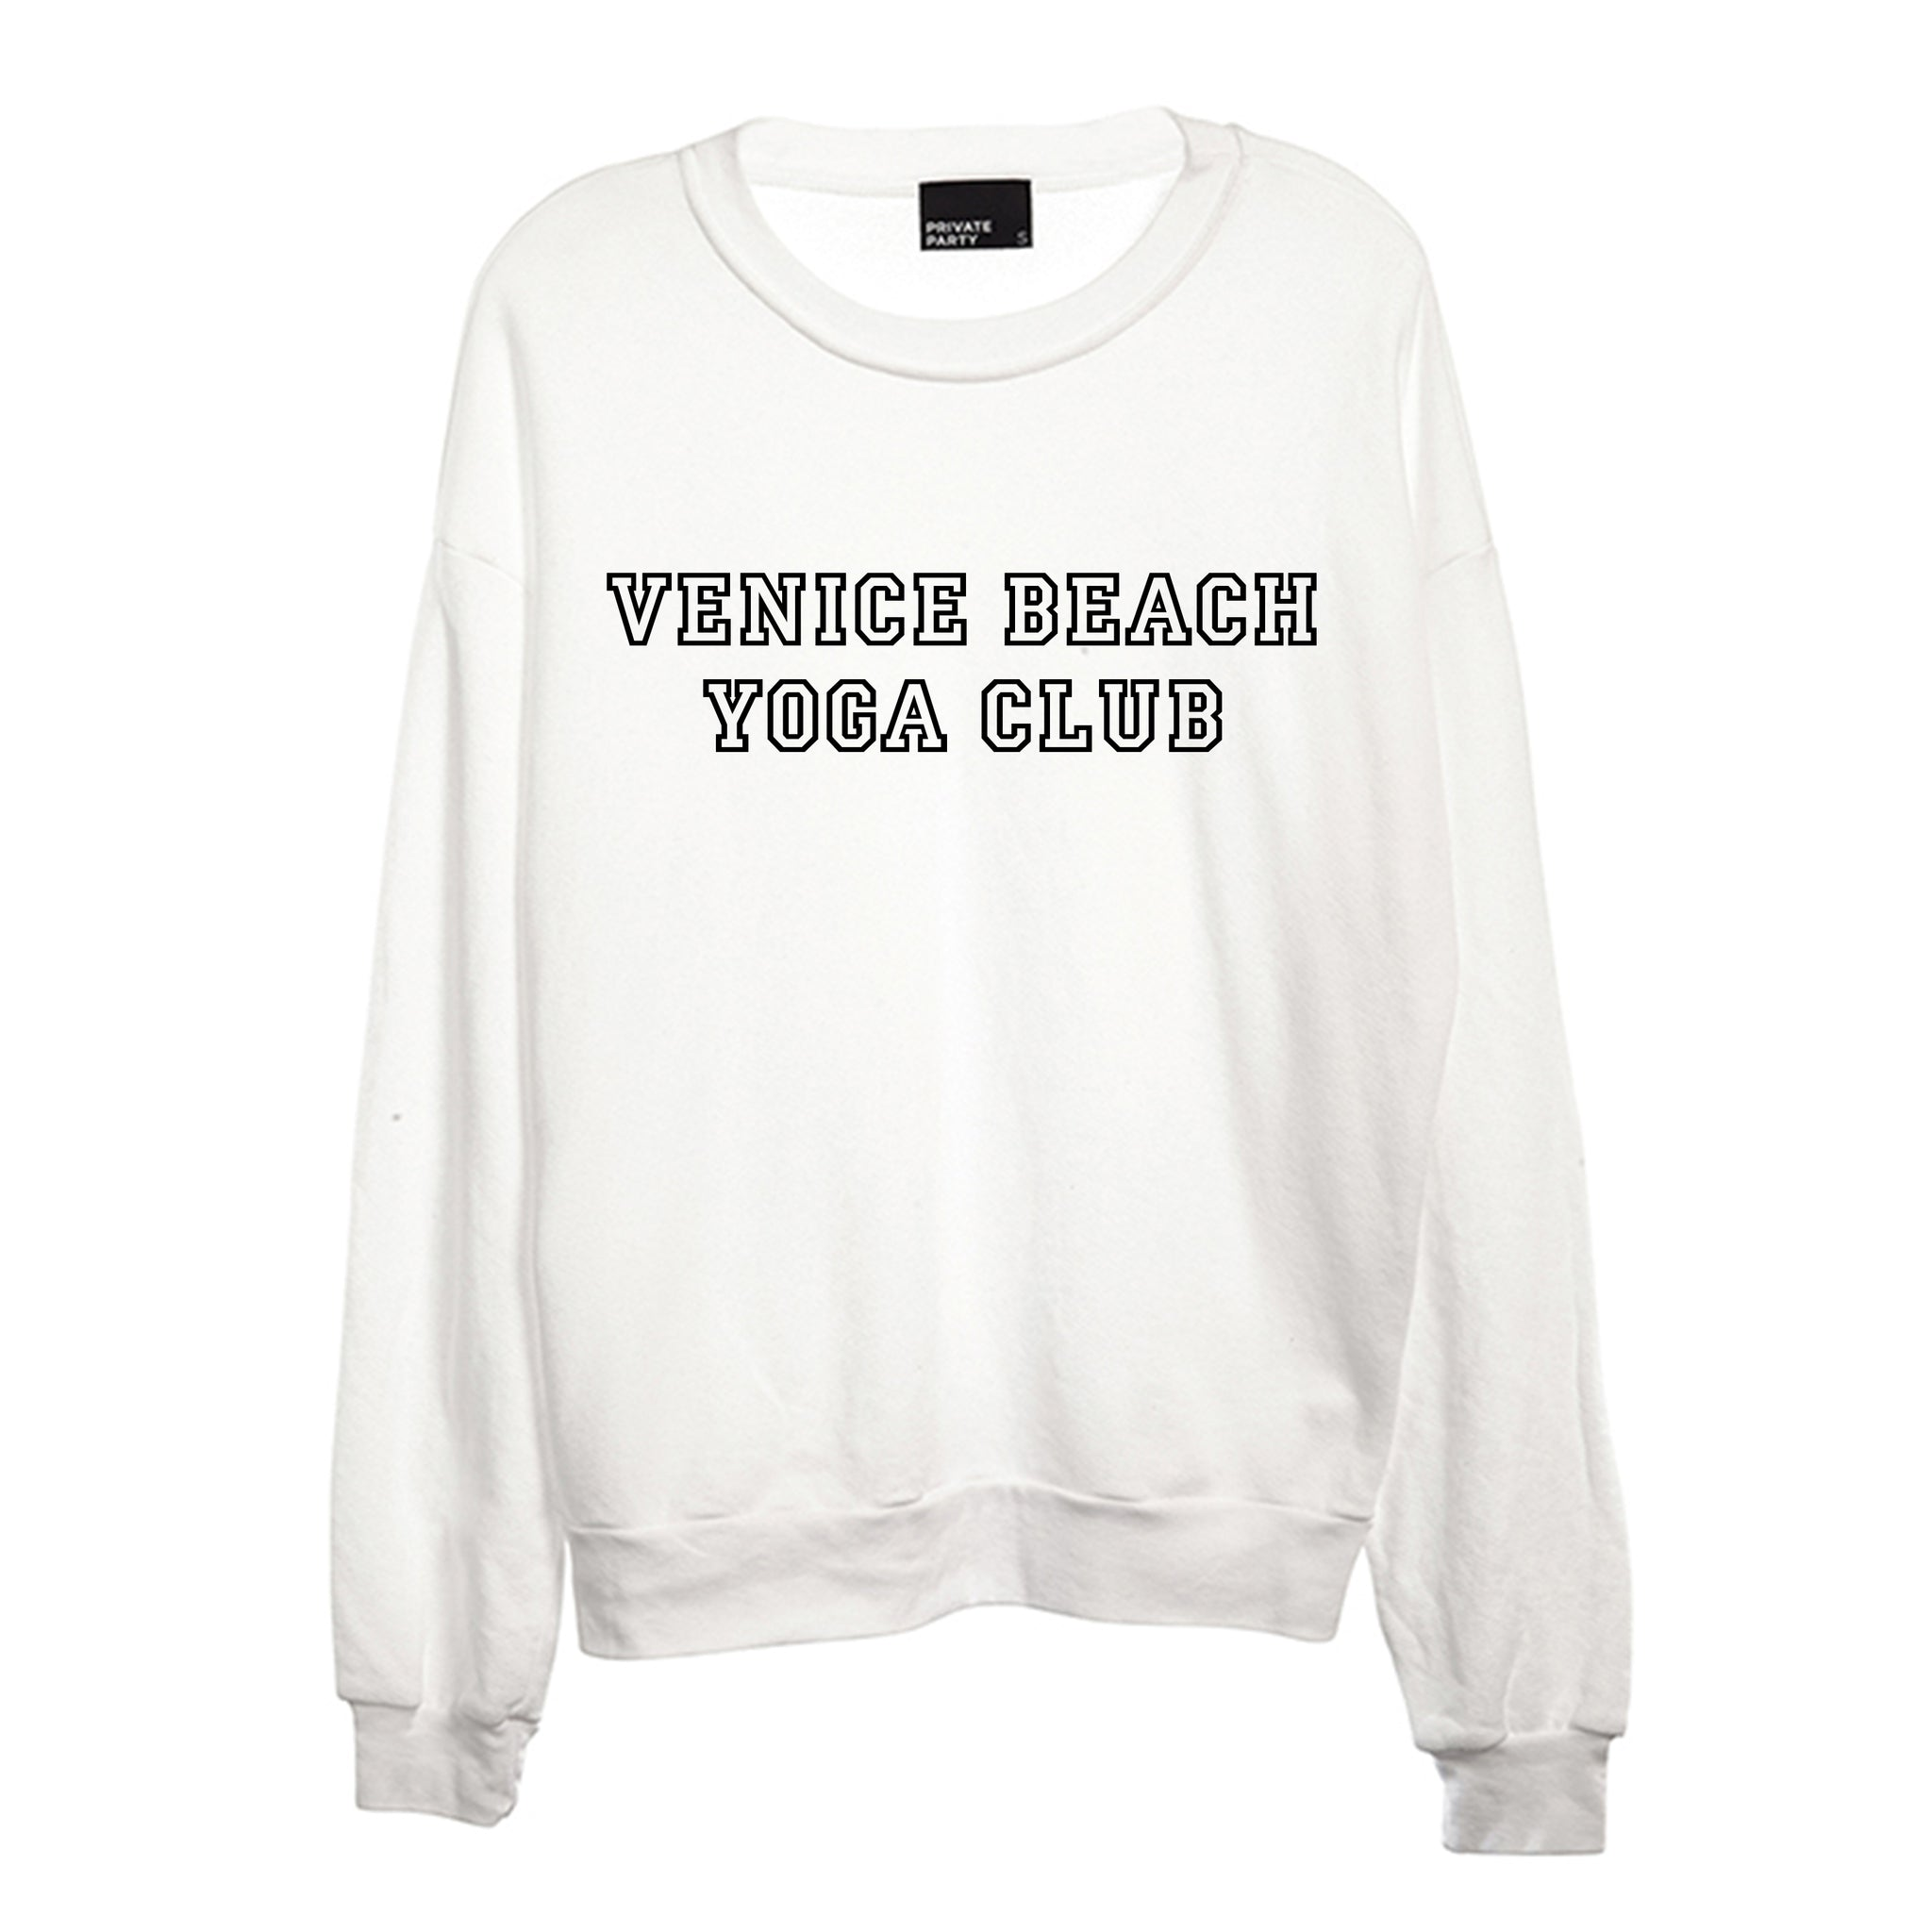 VENICE BEACH YOGA CLUB [UNISEX CREWNECK SWEATSHIRT]